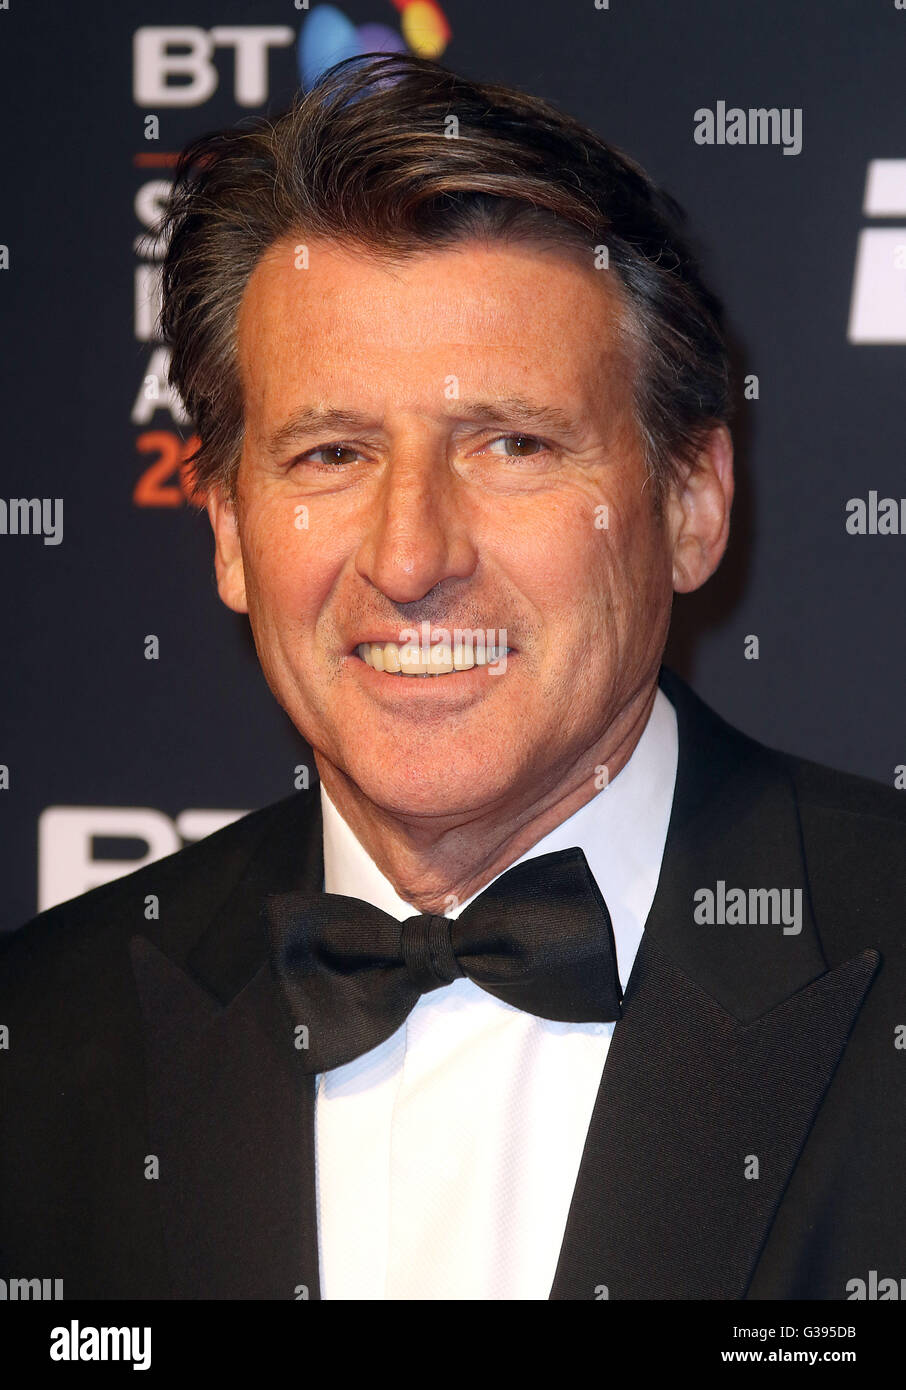 April 29, 2016 - Sebastian Coe attending BT Sport Awards at Battersea Evolution in London, UK. - Stock Image